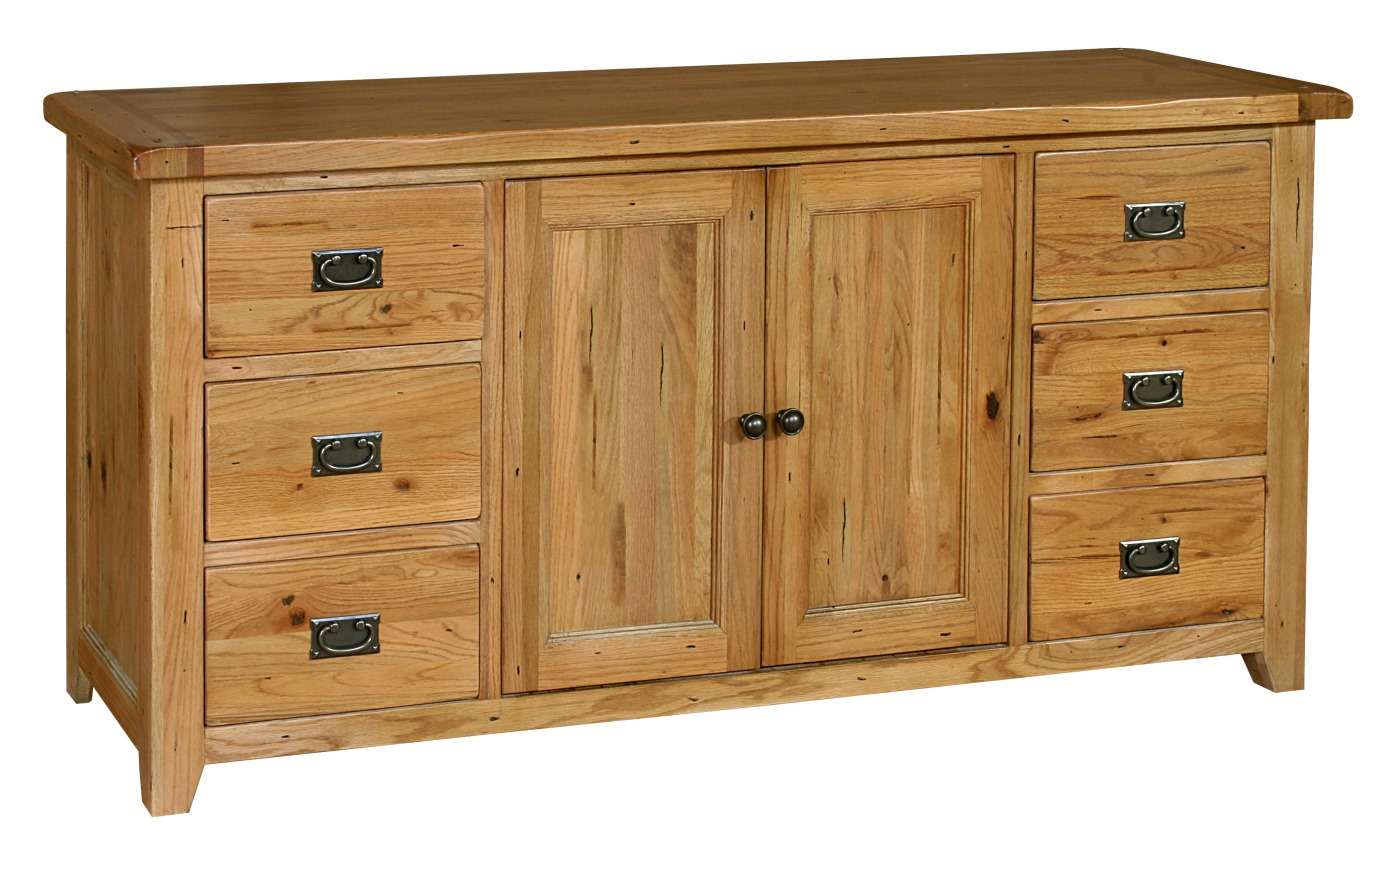 Tuscany Solid Oak Furniture Large Living Dining Room Sideboard EBay. Full resolution  portraiture, nominally Width 1400 Height 869 pixels, portraiture with #734C23.